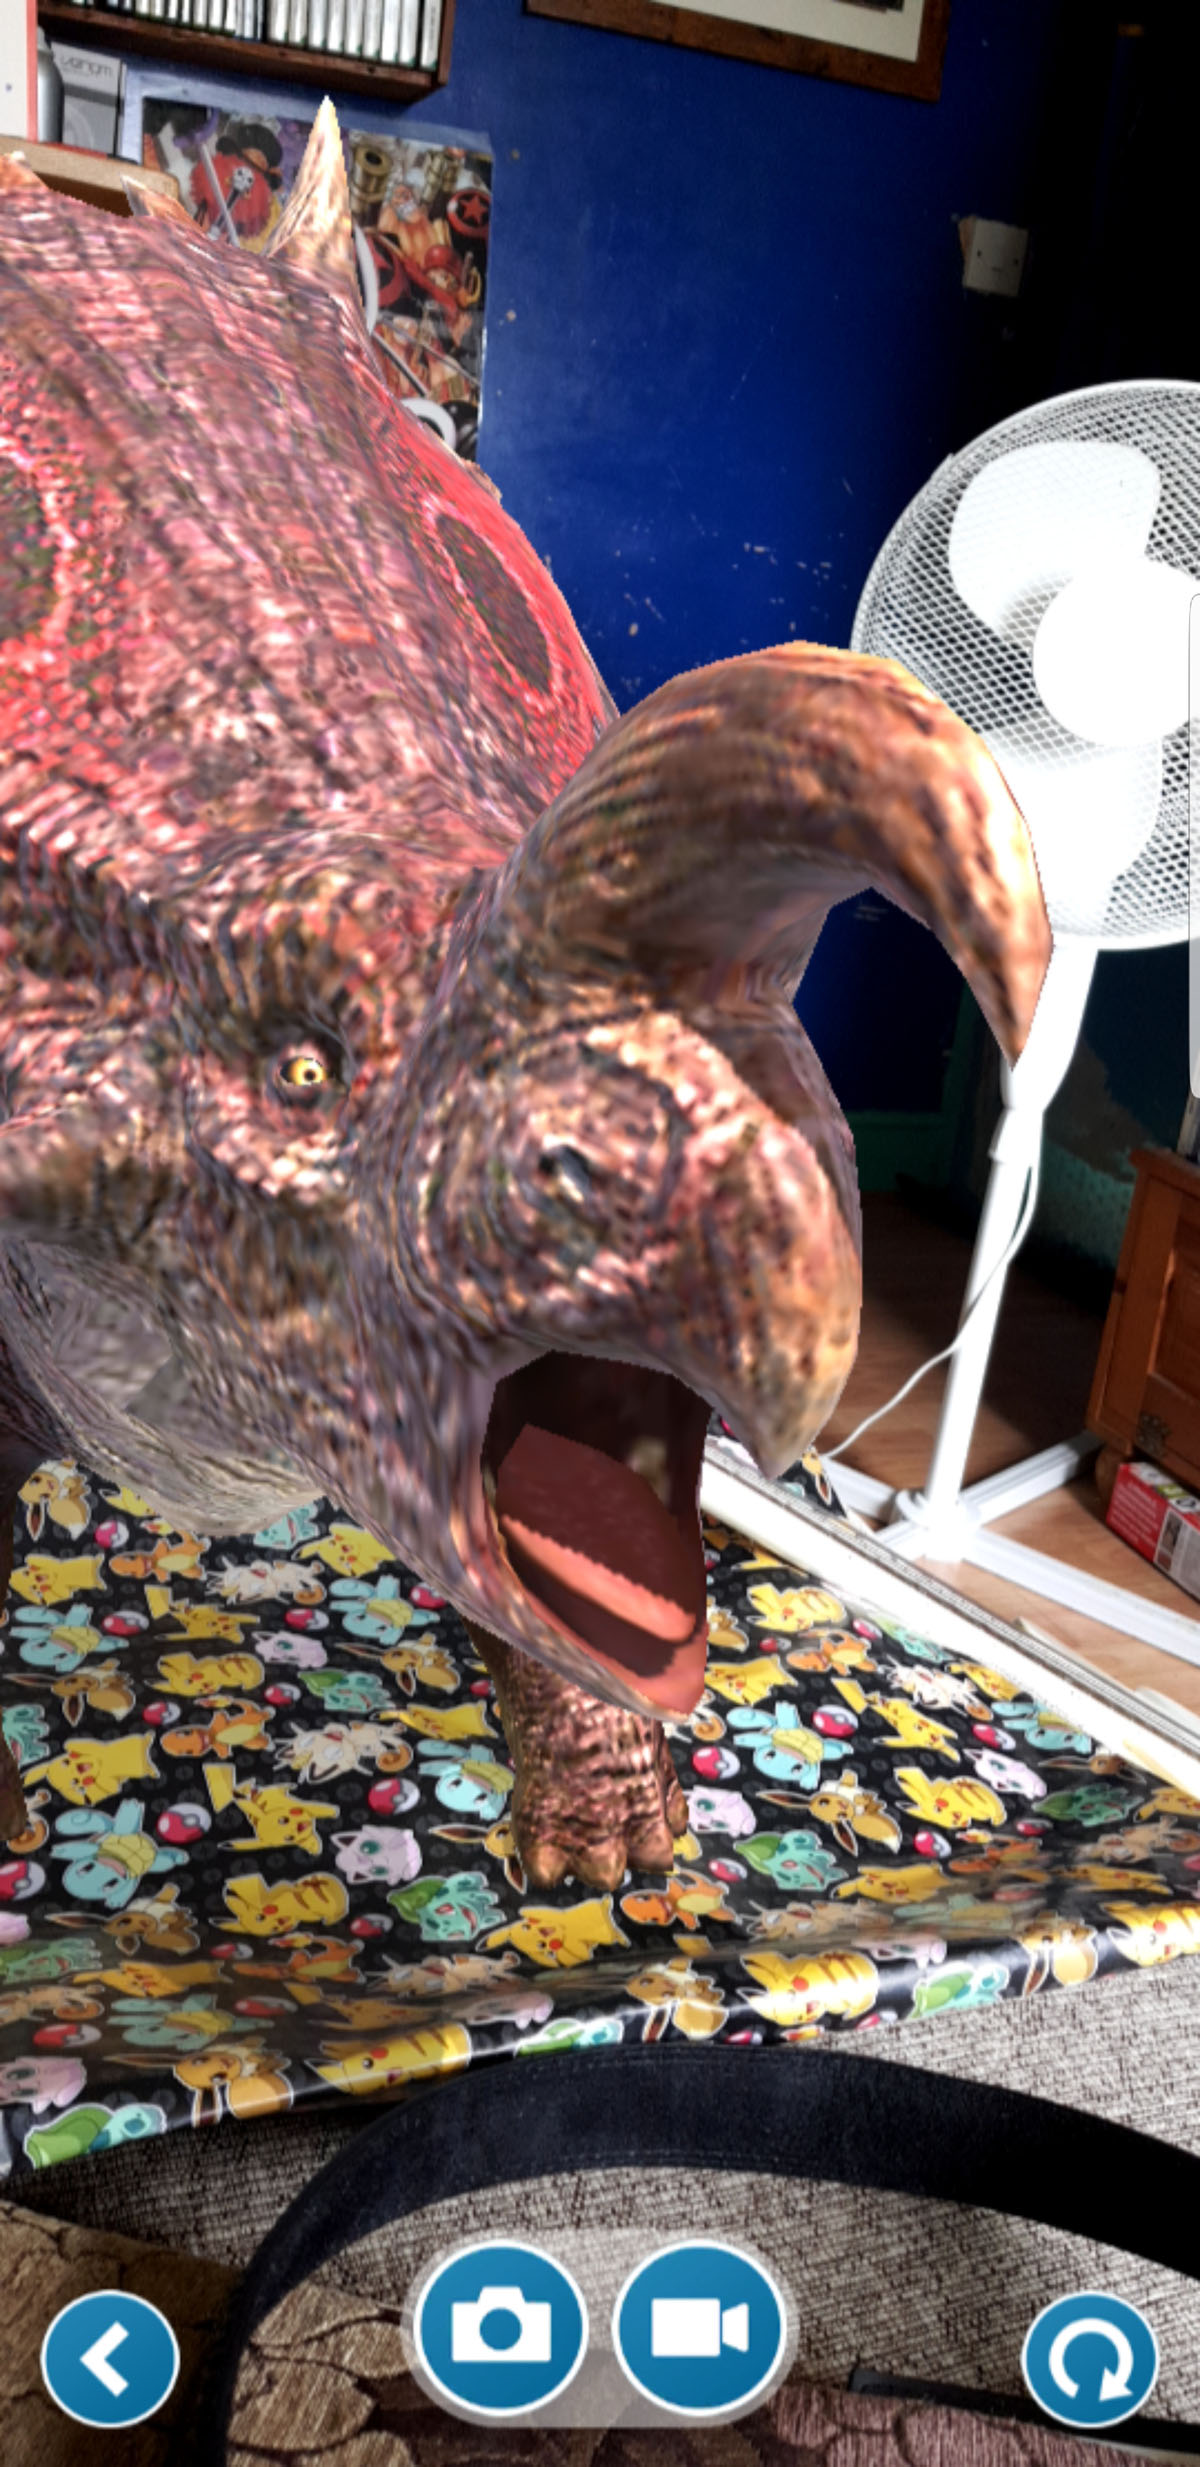 Jurassic World Alive cheats and tips - Essential tips for the strongest dinos in Arena mode